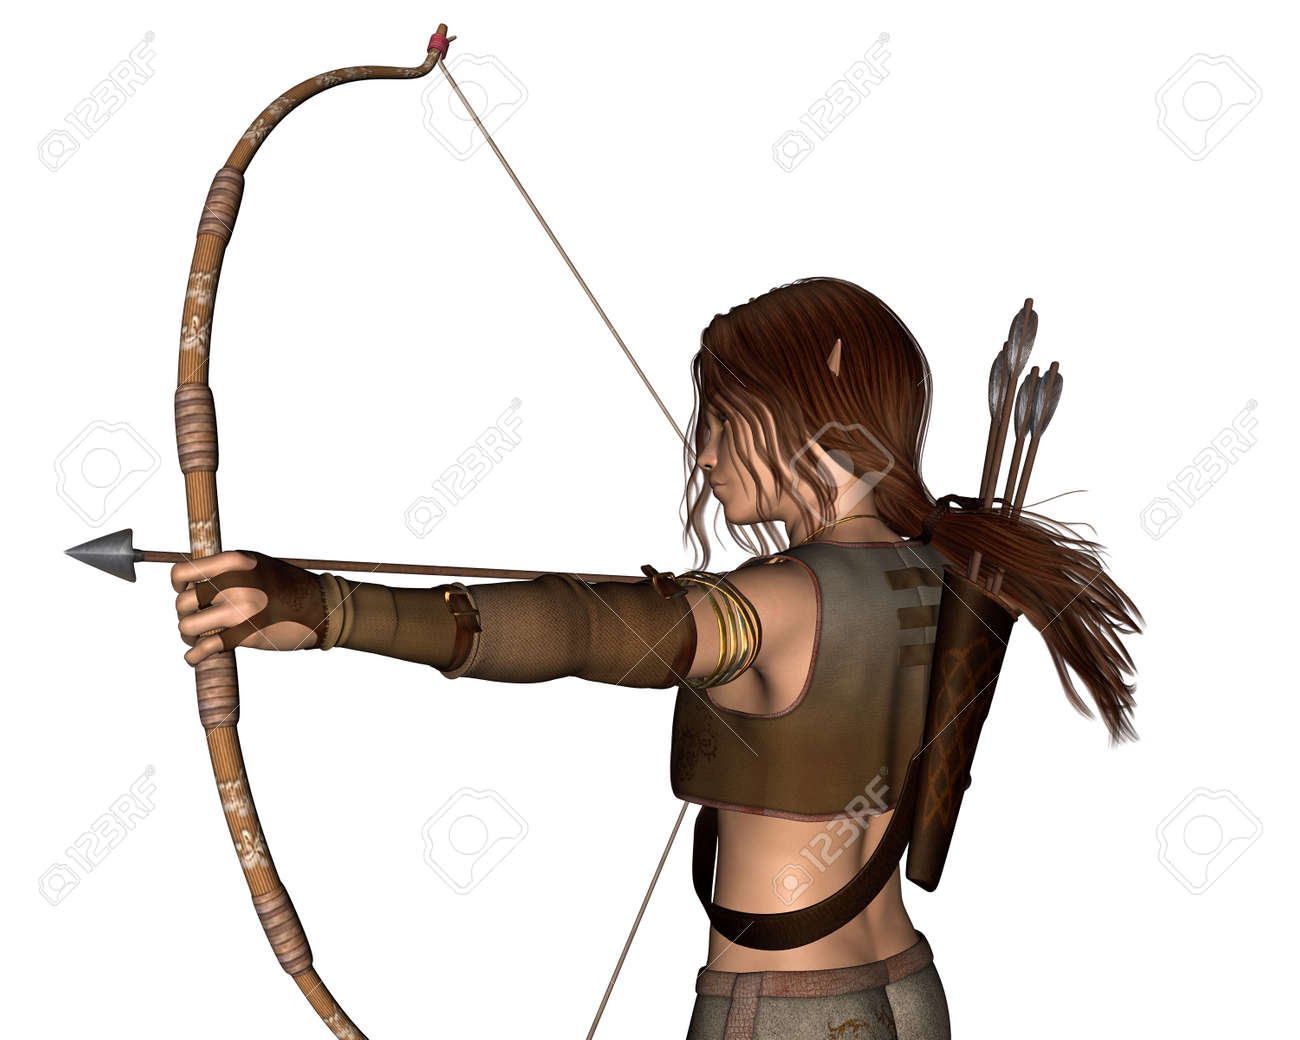 Fantasy Portrait Illustration Of A Young Male Elf Archer Hunting Stock Photo Picture And Royalty Free Image Image 31354709